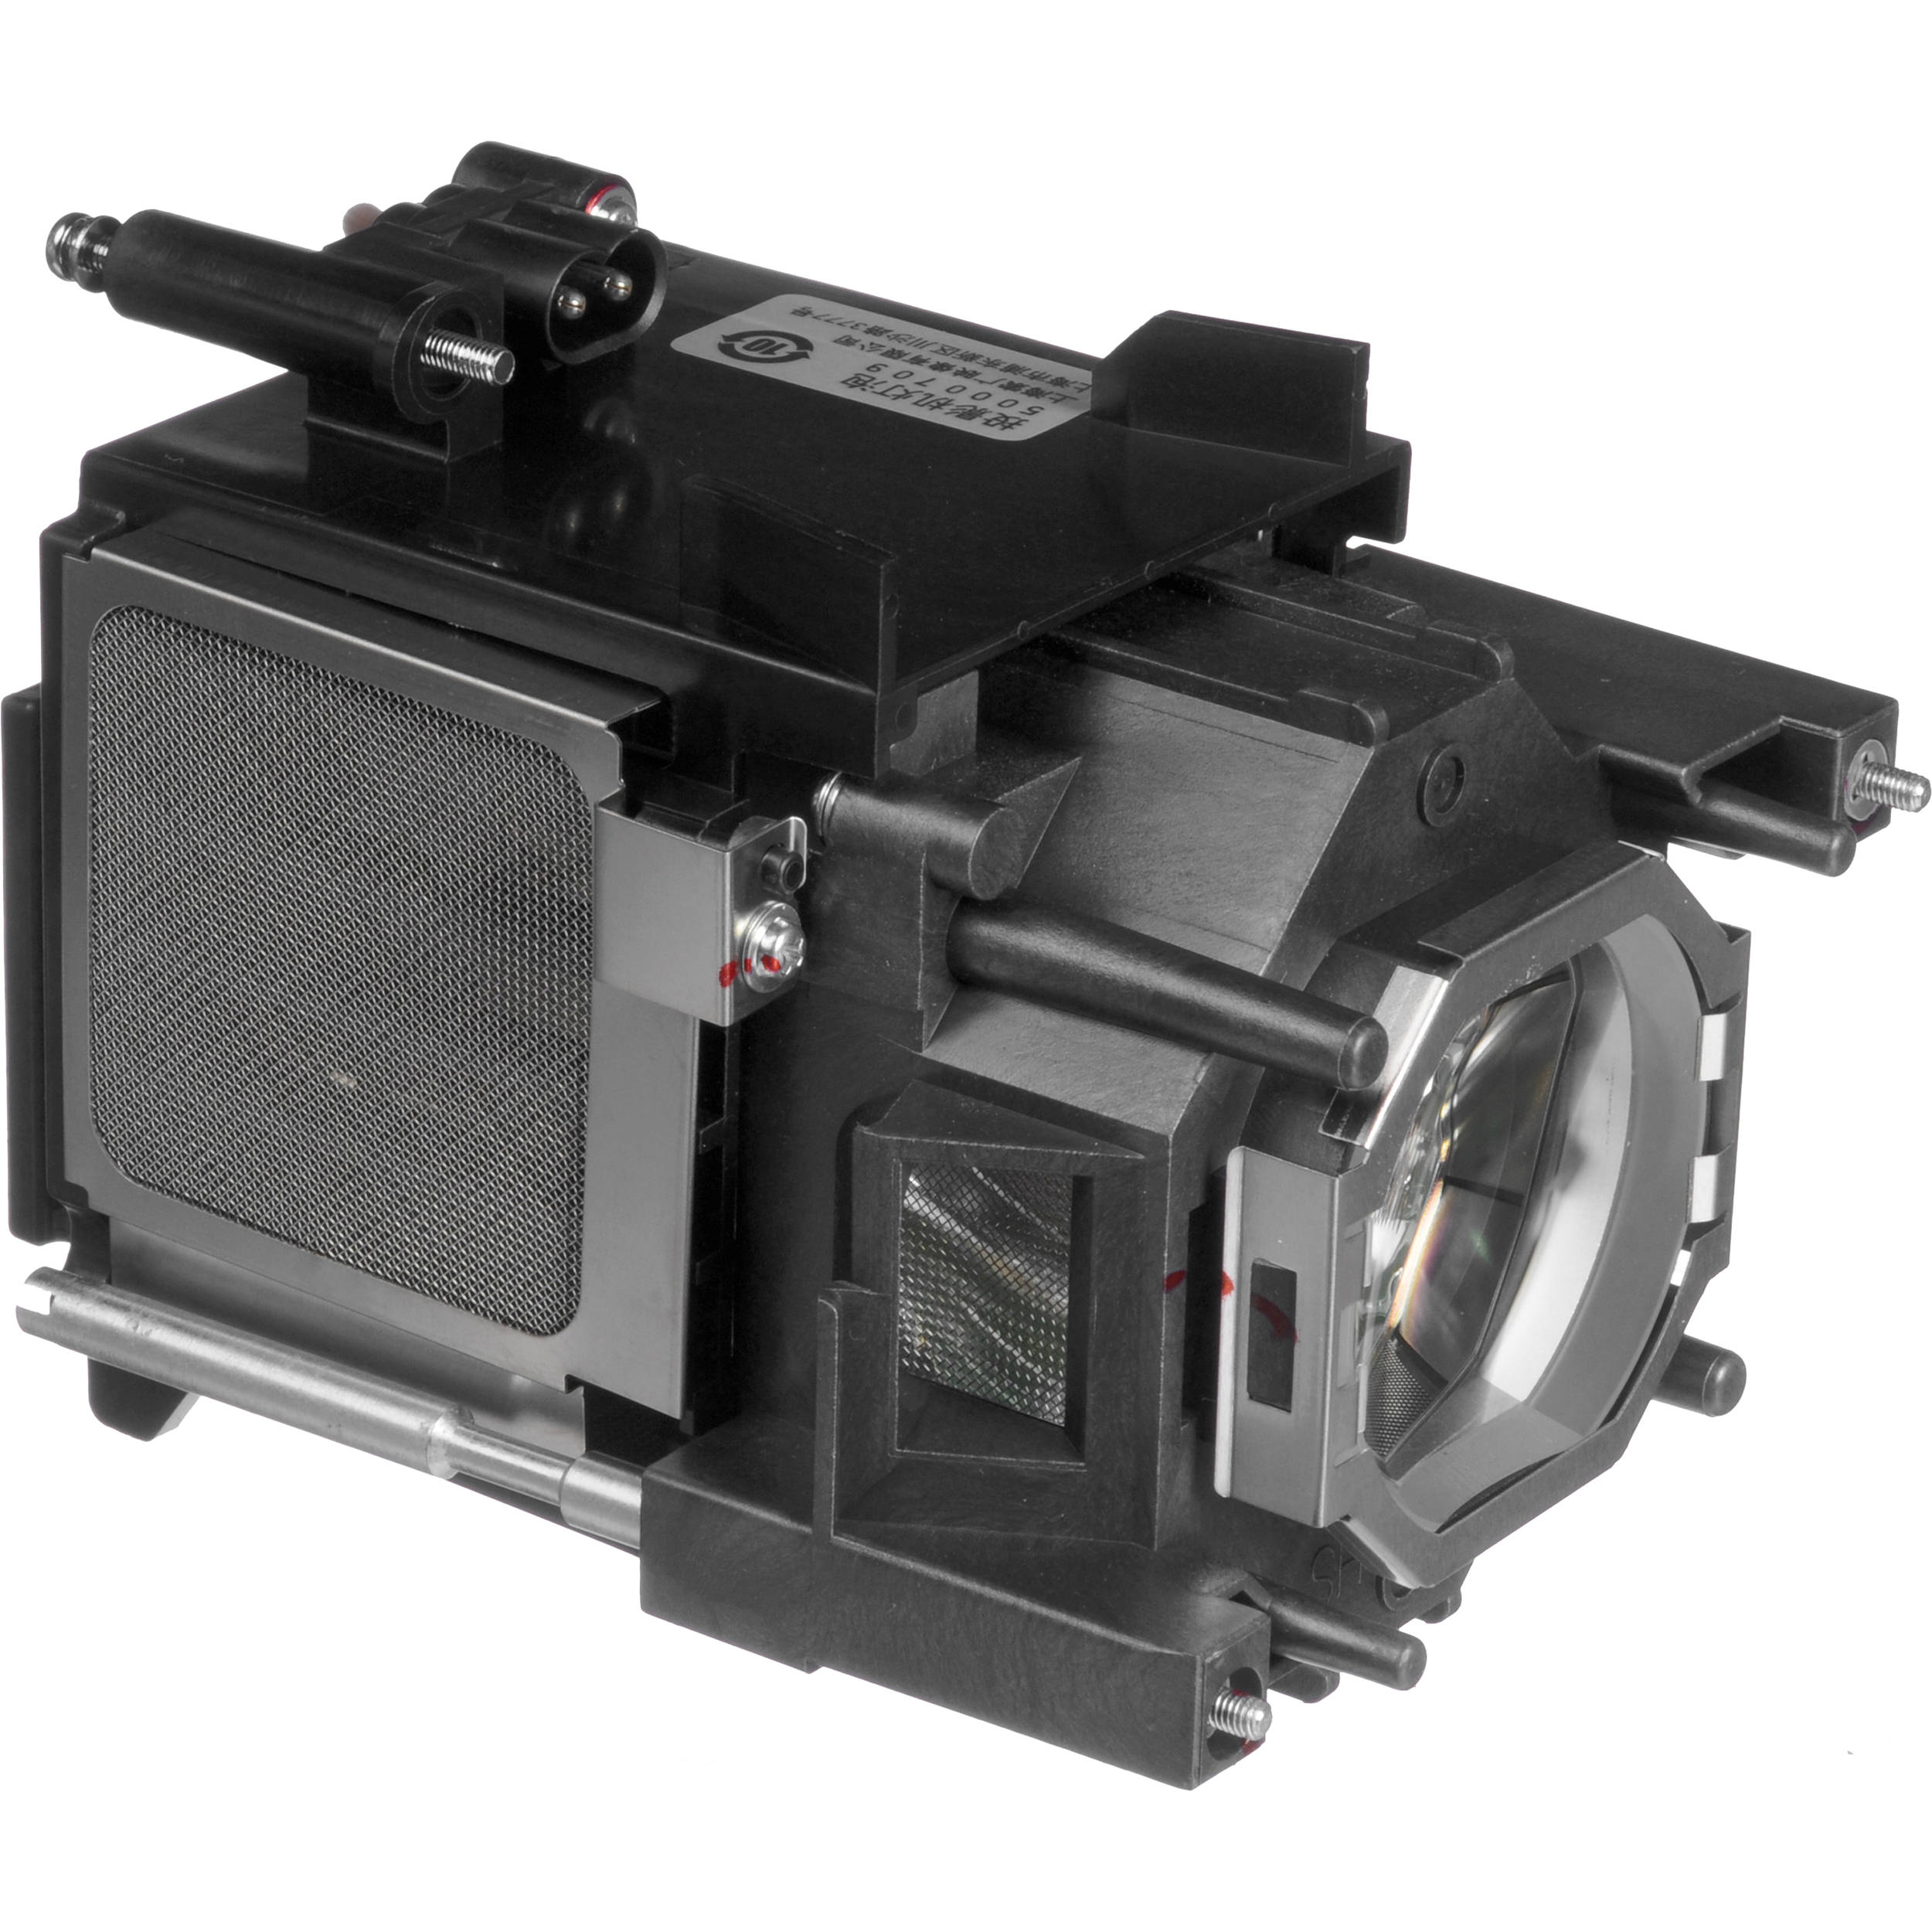 Sony LMP-F331 Replacement Lamp for the Sony VPL-FH35 LMP-F331